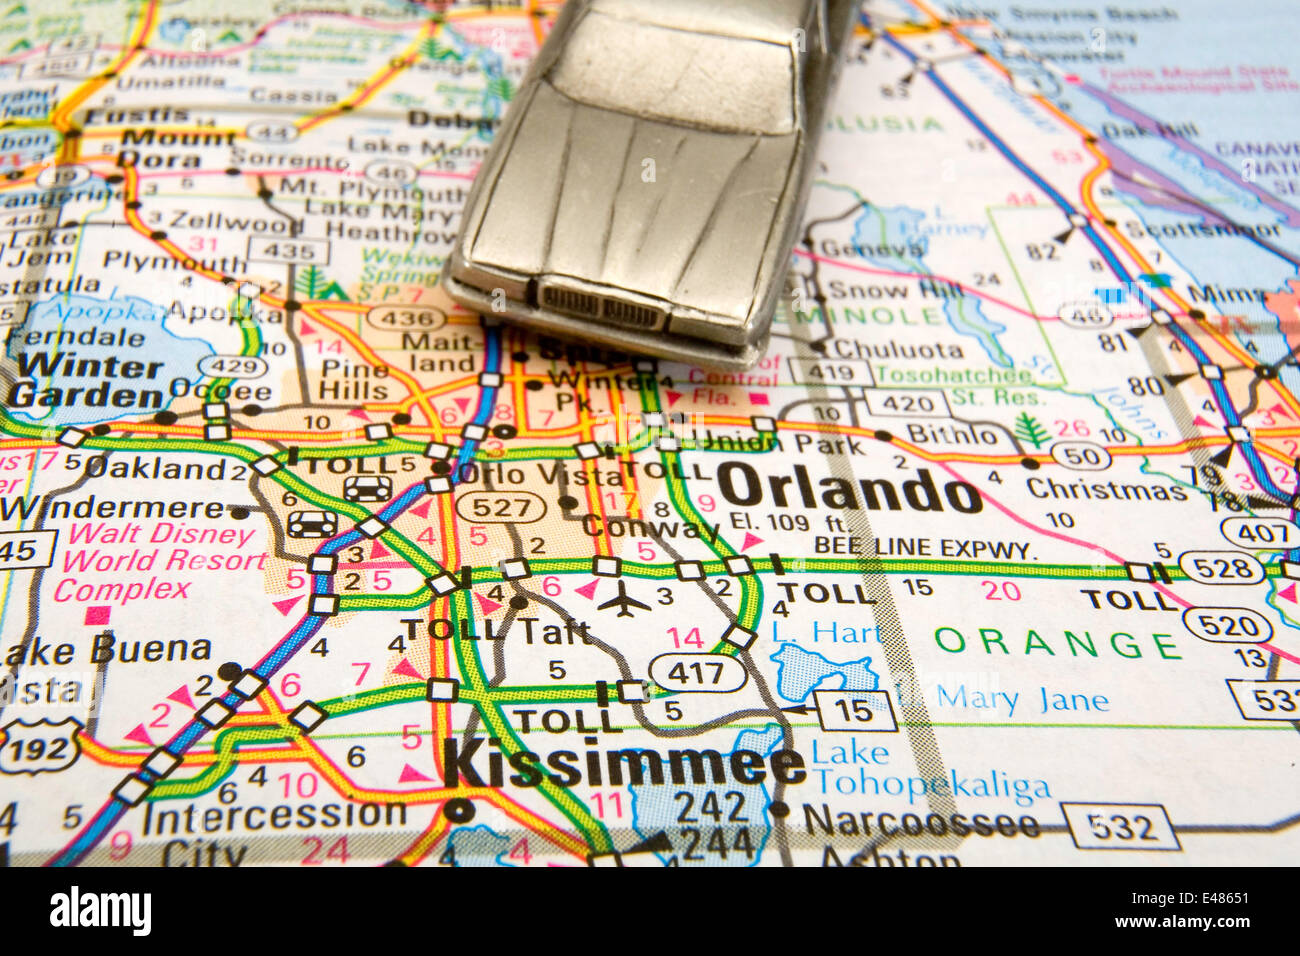 kissimmee florida map streets